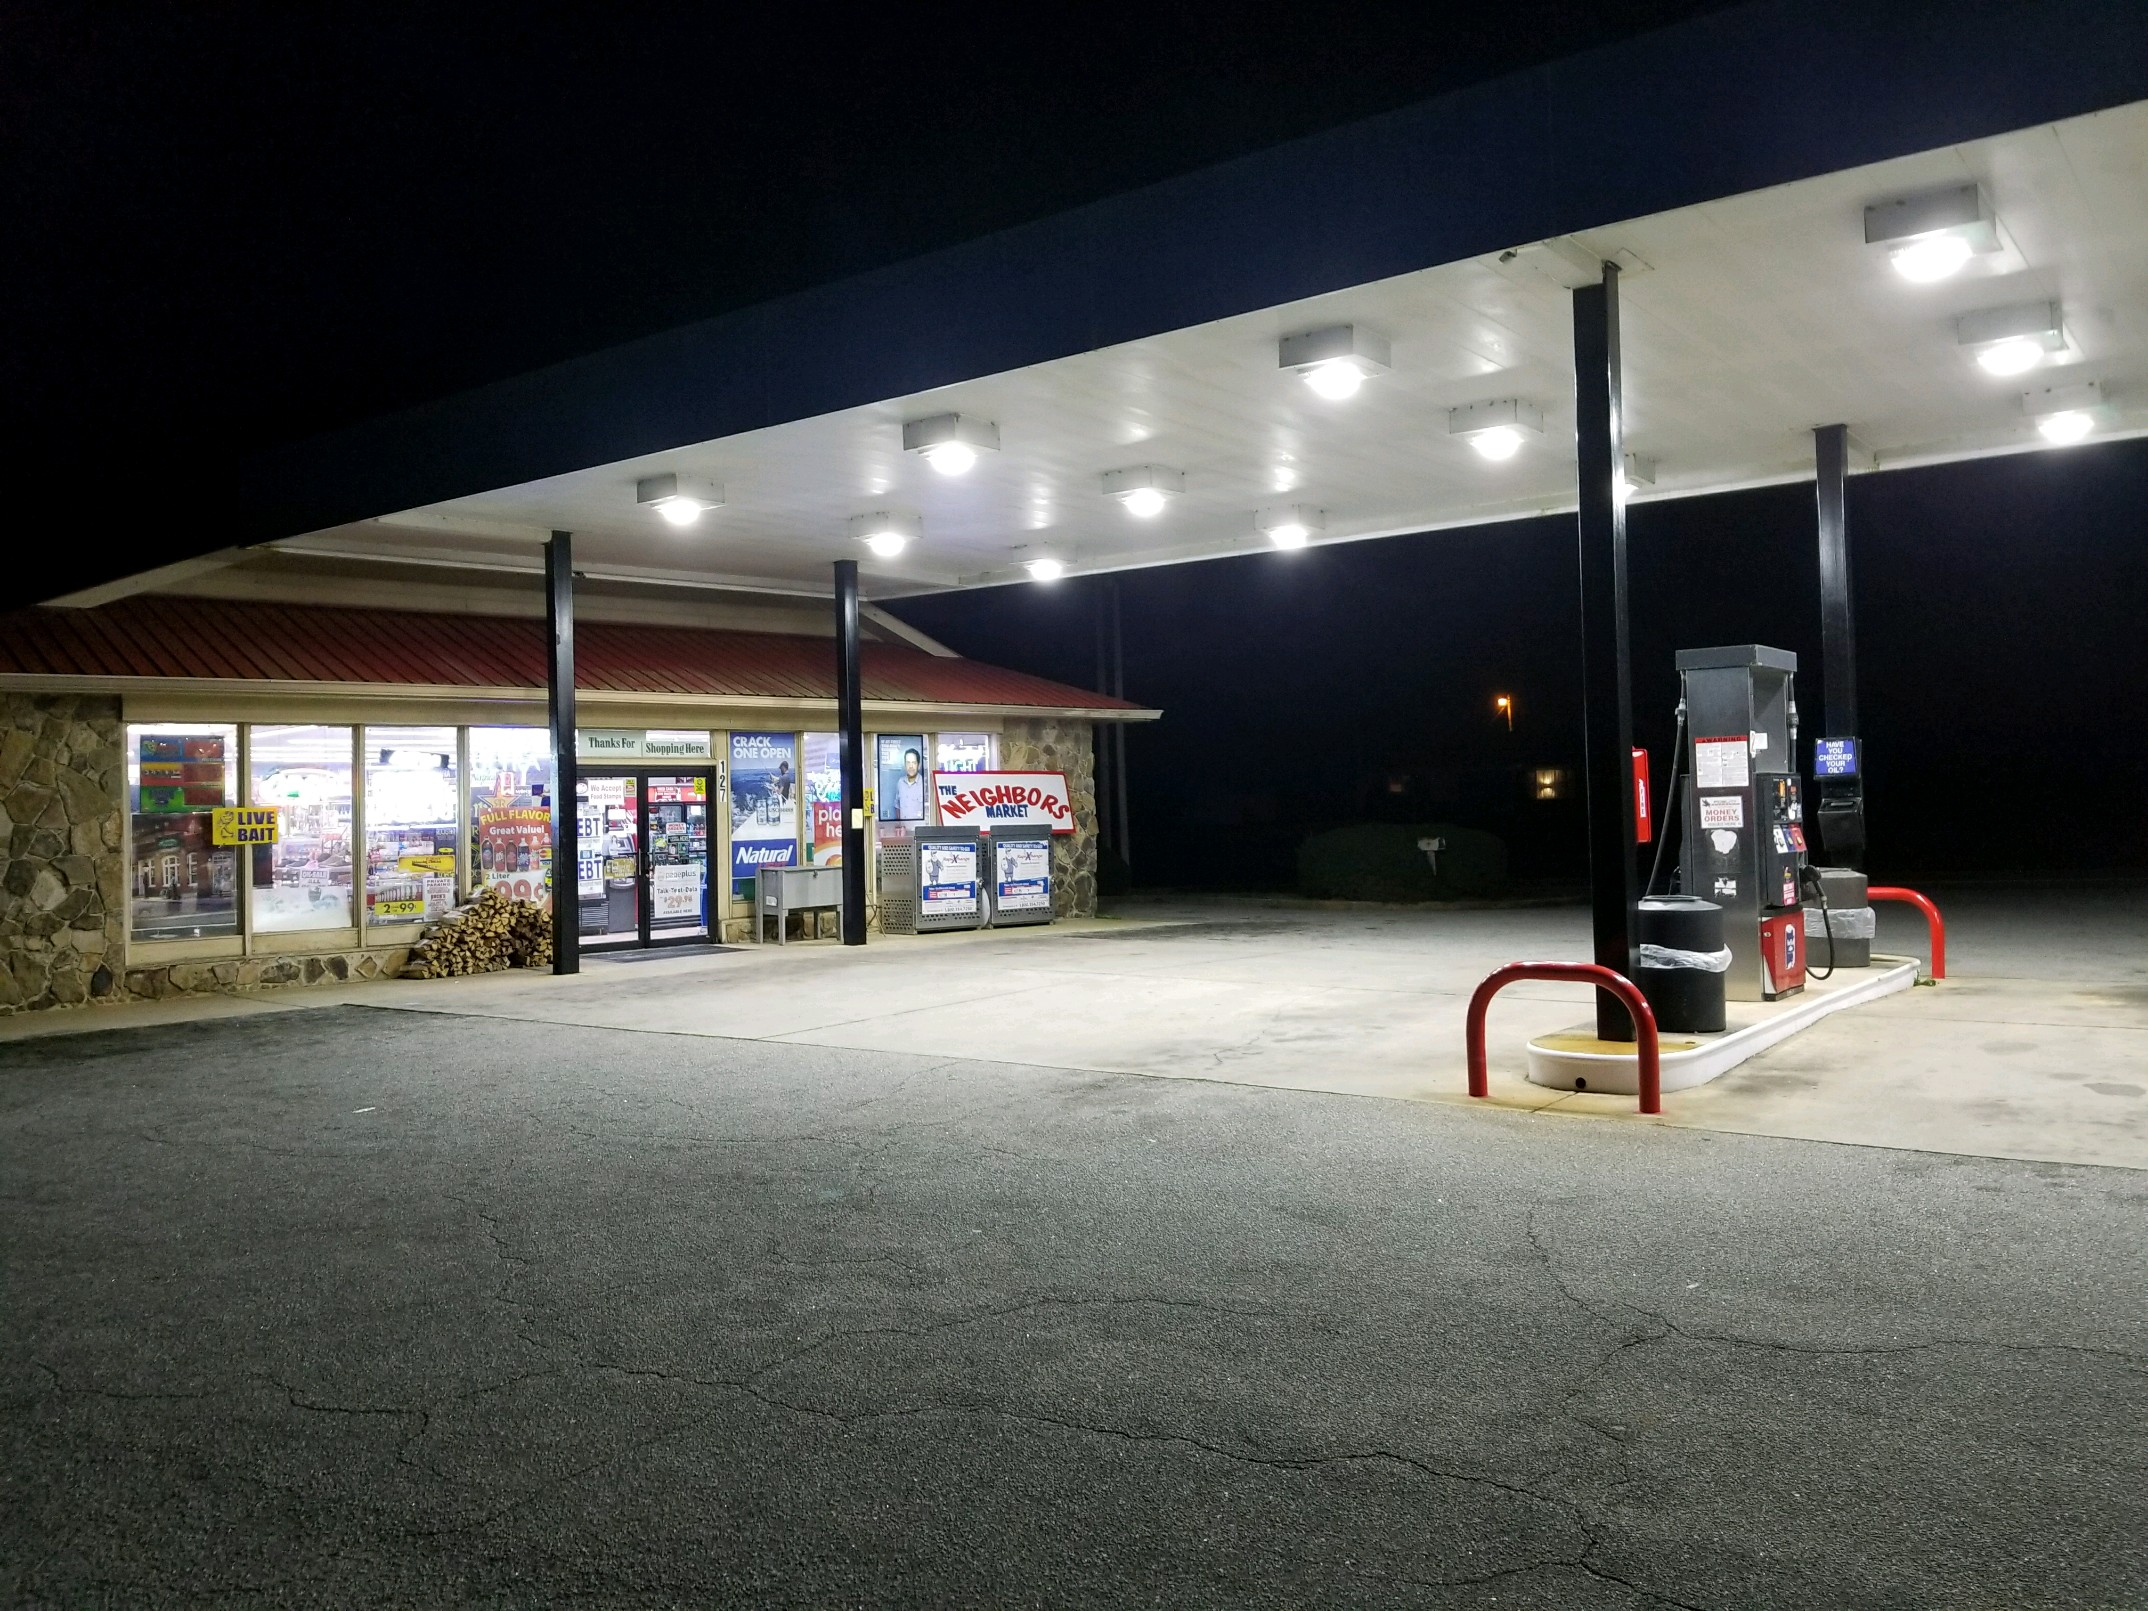 Southern Gas station - Shelter over pumps, full convenient store  in Newnan